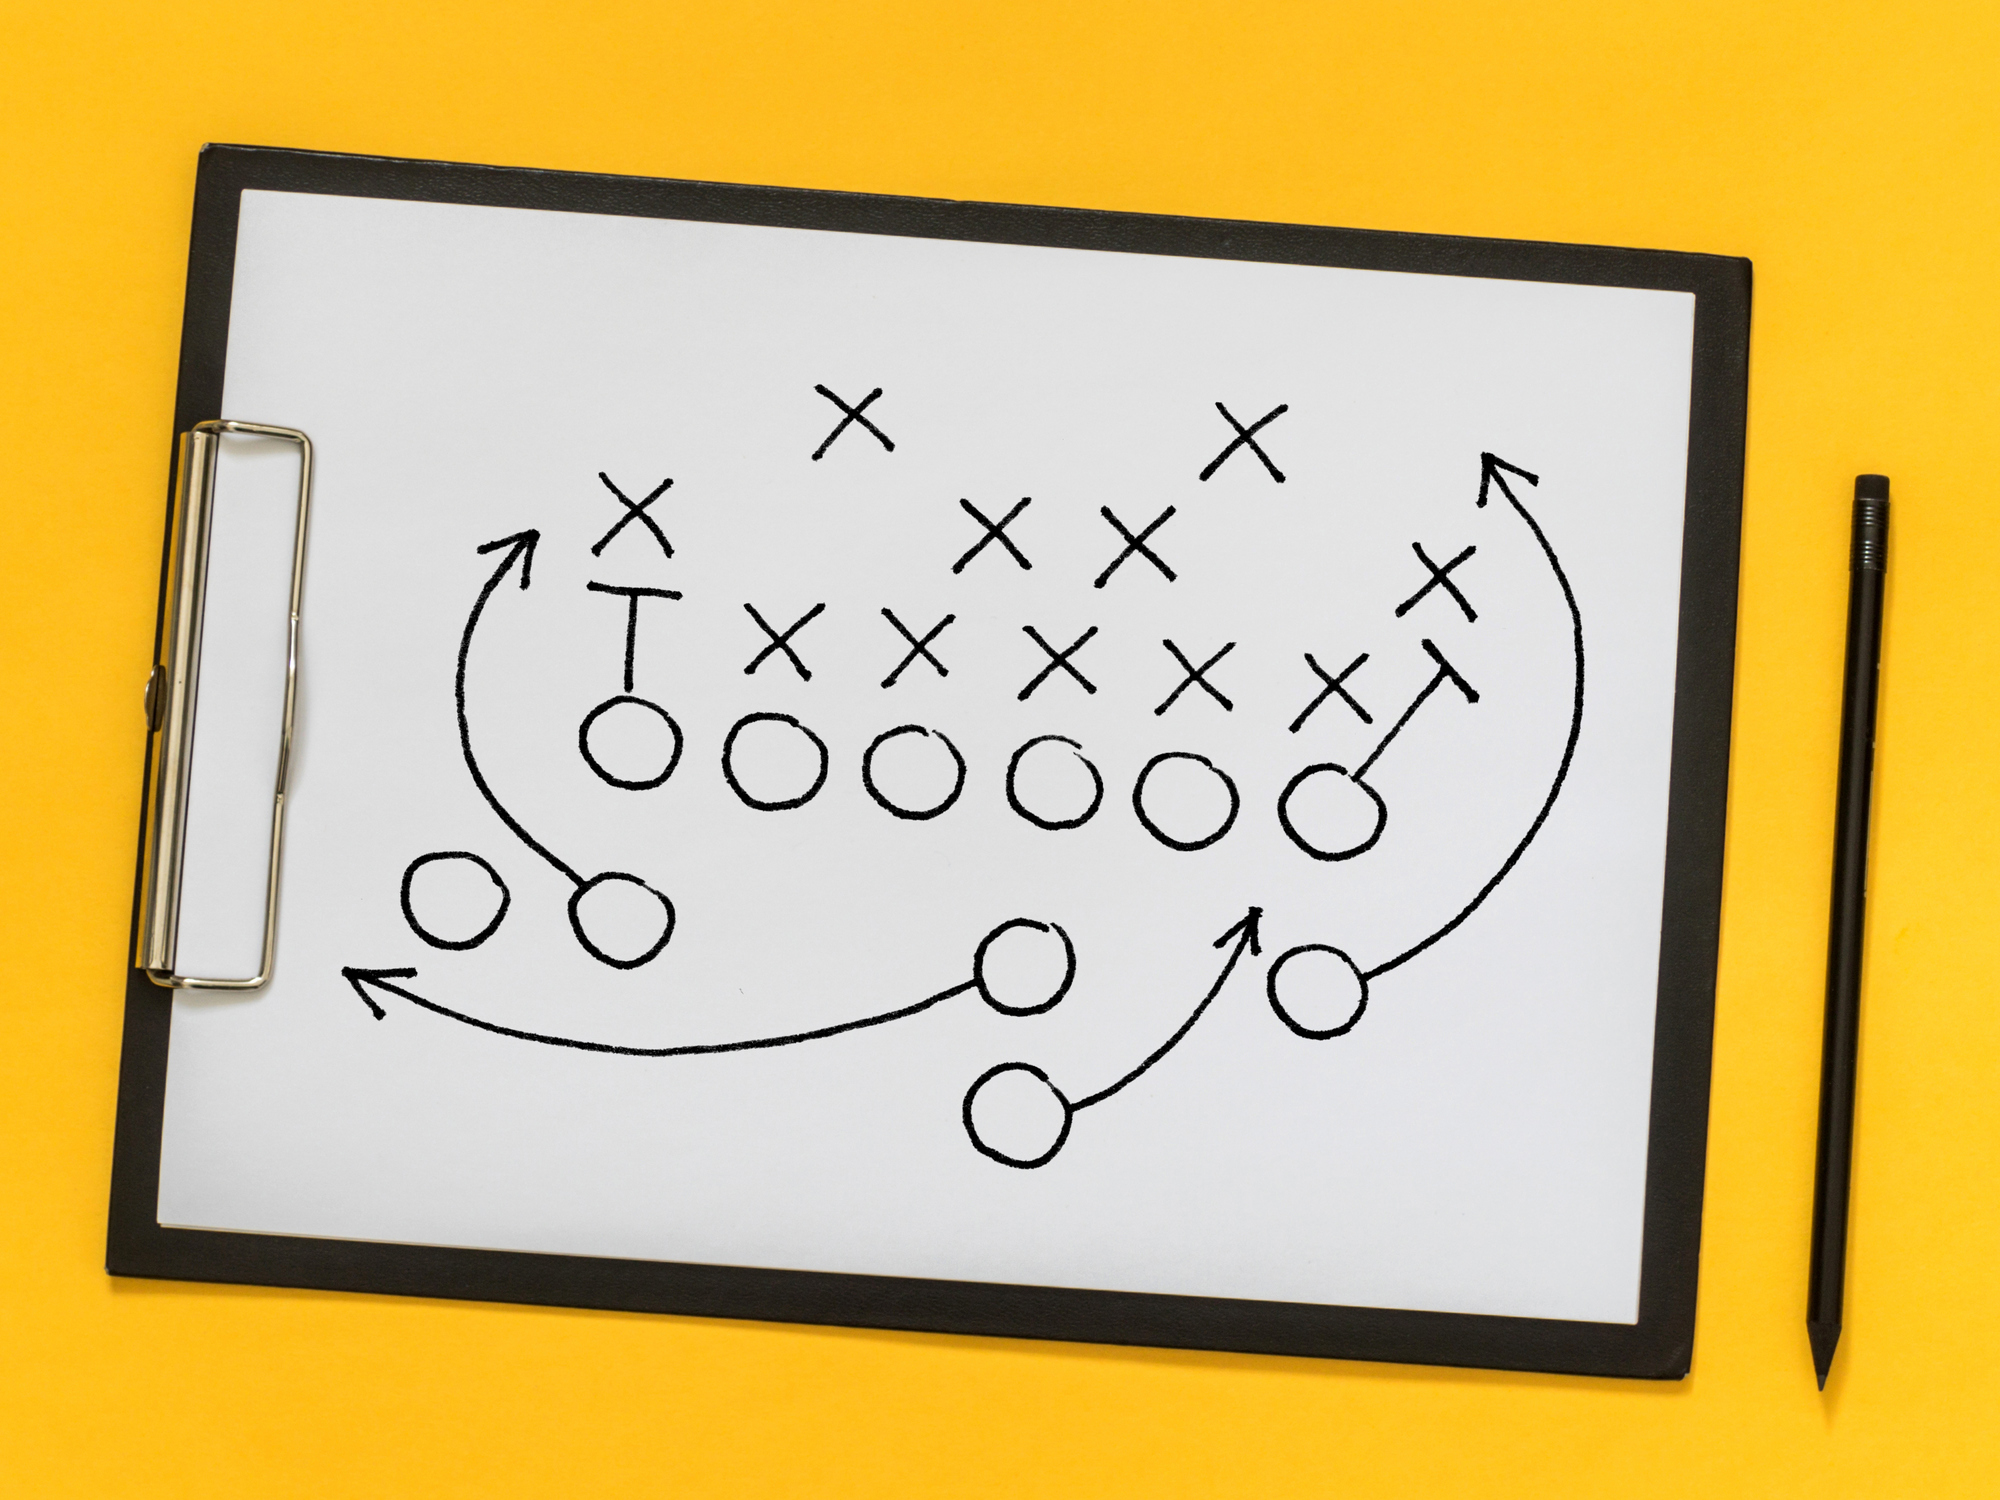 football play drawn out on clipboard